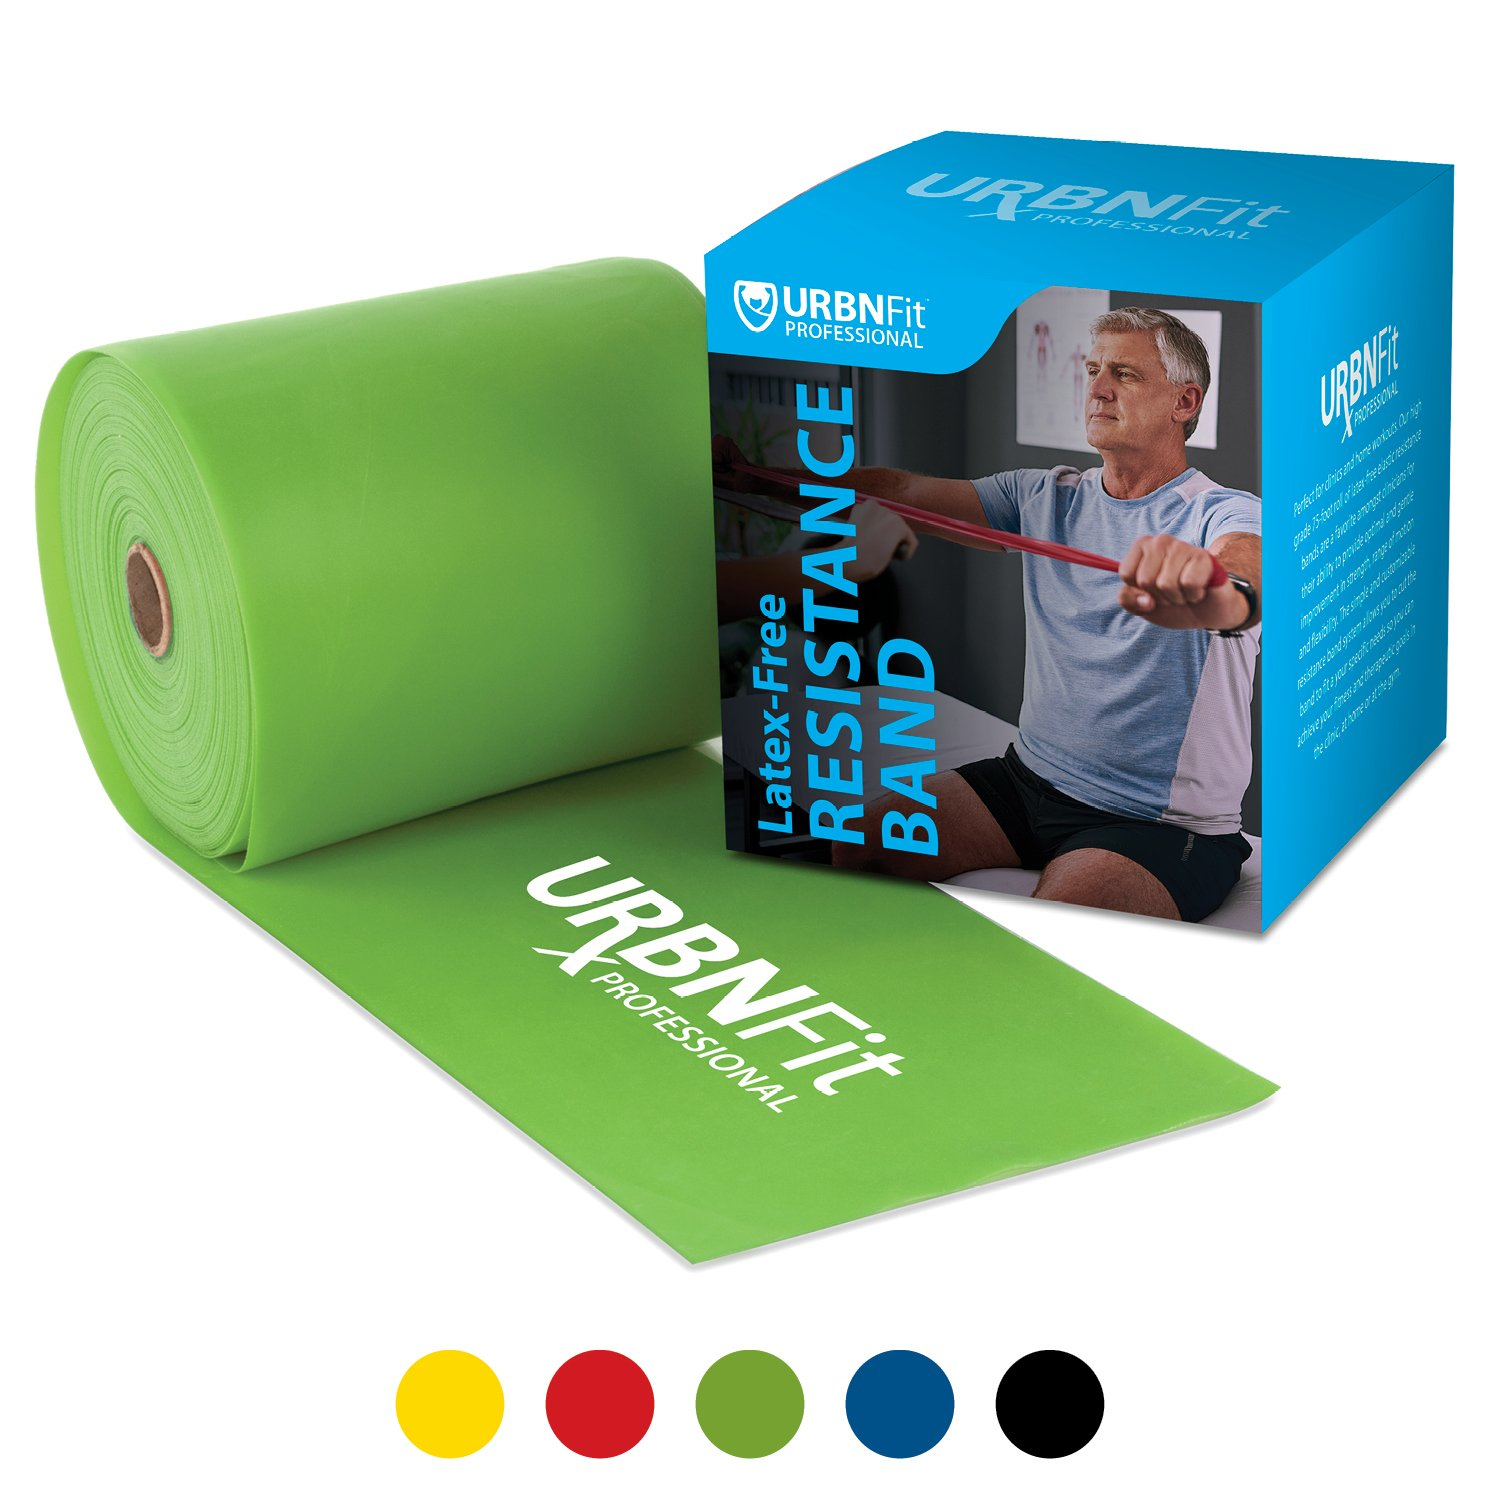 Professional Resistance Bands - 25 Yards (75ft) Latex-Free Elastic Exercise Fitness Band Roll - No Scent, No Powder - Perfect for Physical Therapy & Rehab, Yoga, Pilates